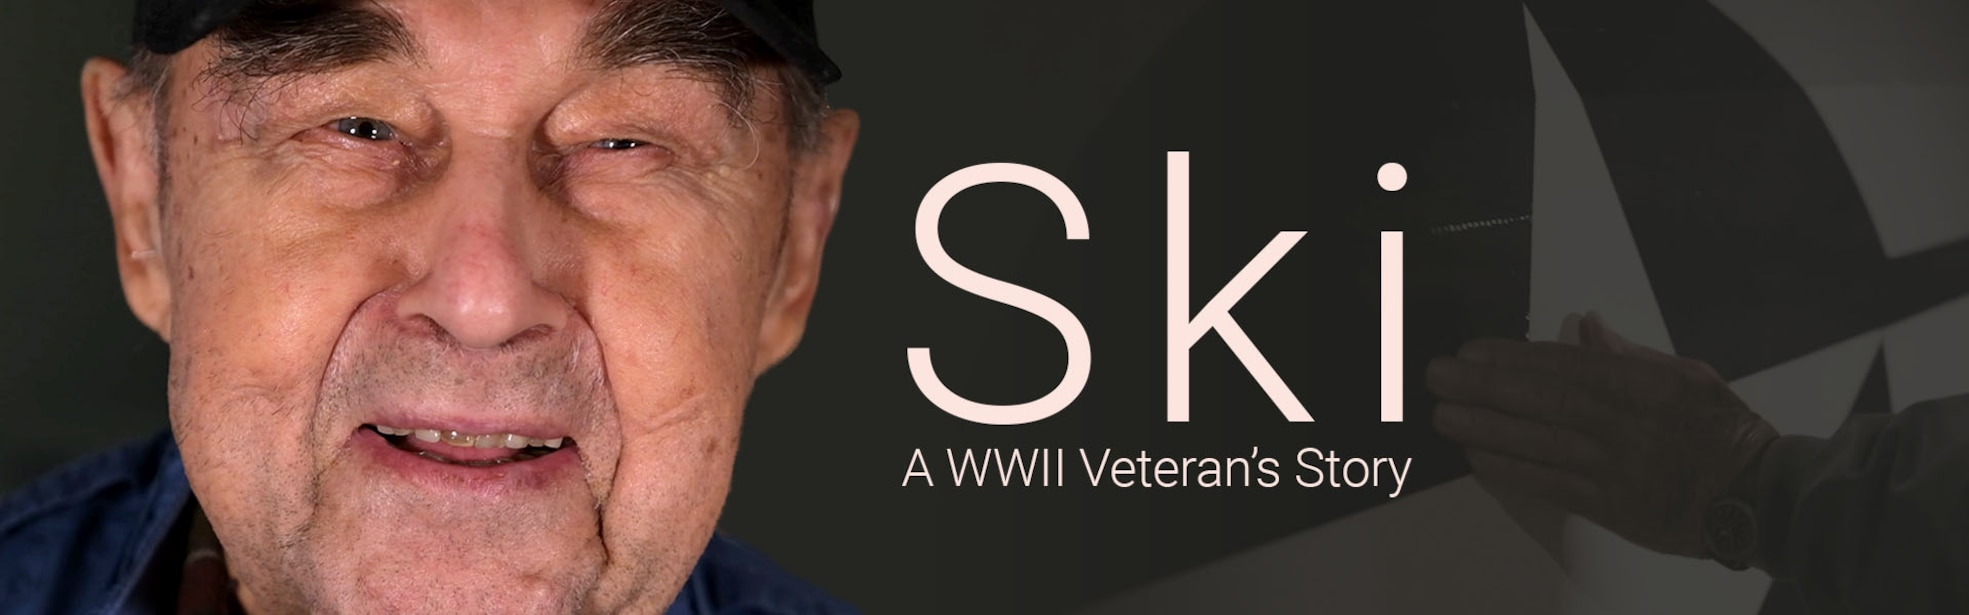 Ski a WWII Veteran's Story next to an elderly man's face.